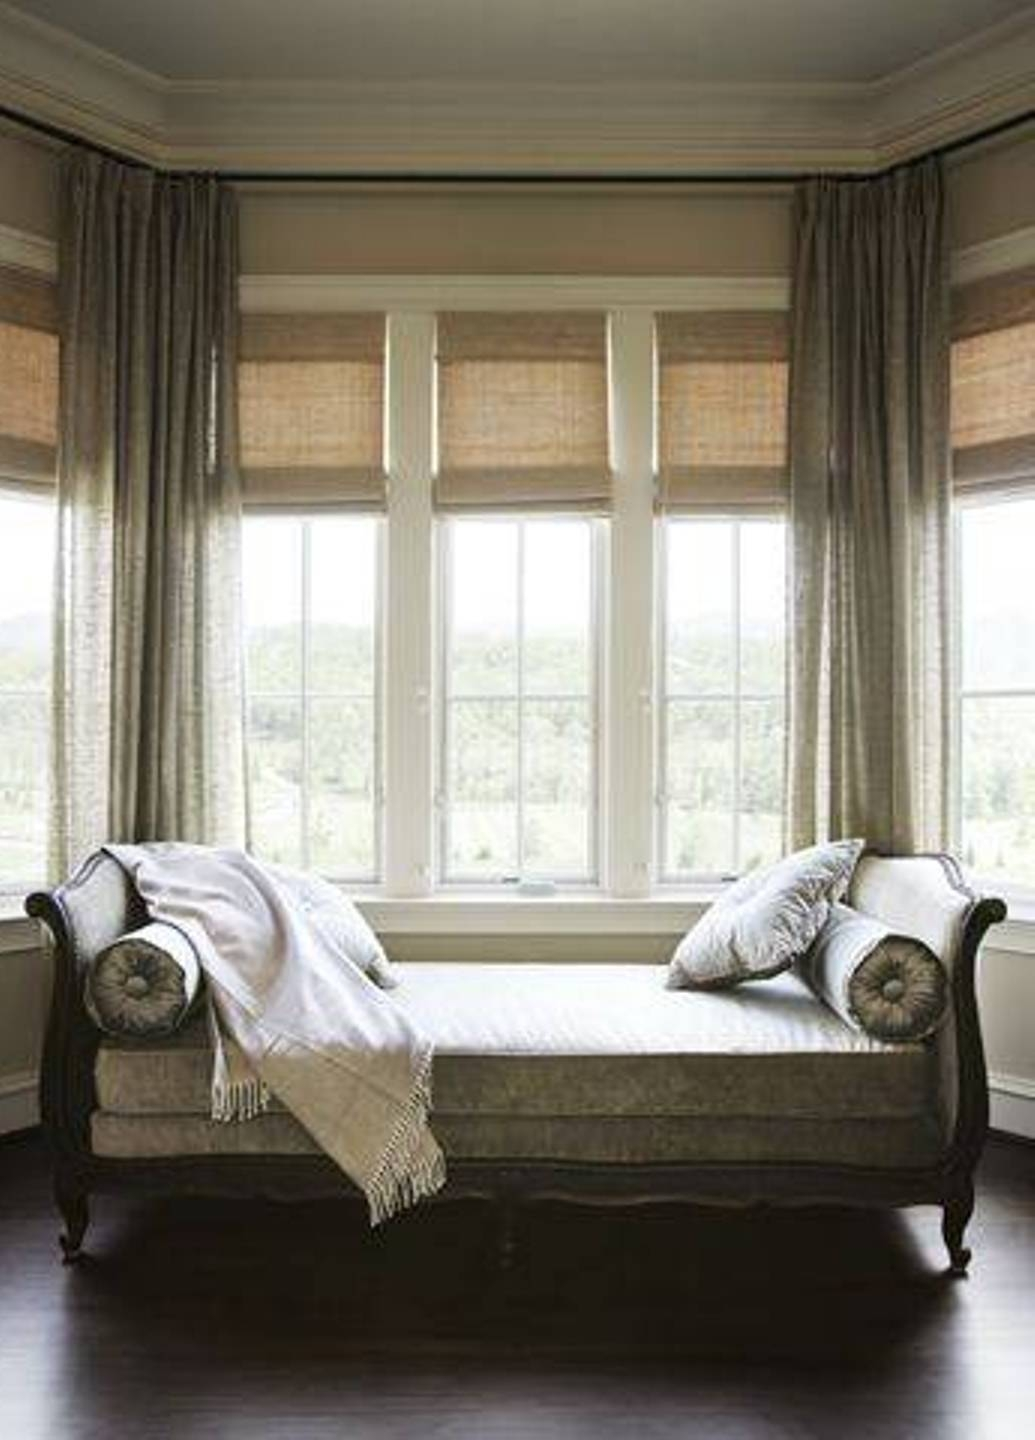 Living Room. Decorating A Bay Window Ideas: Classic Bay Window inside Window Sofas (Image 12 of 15)